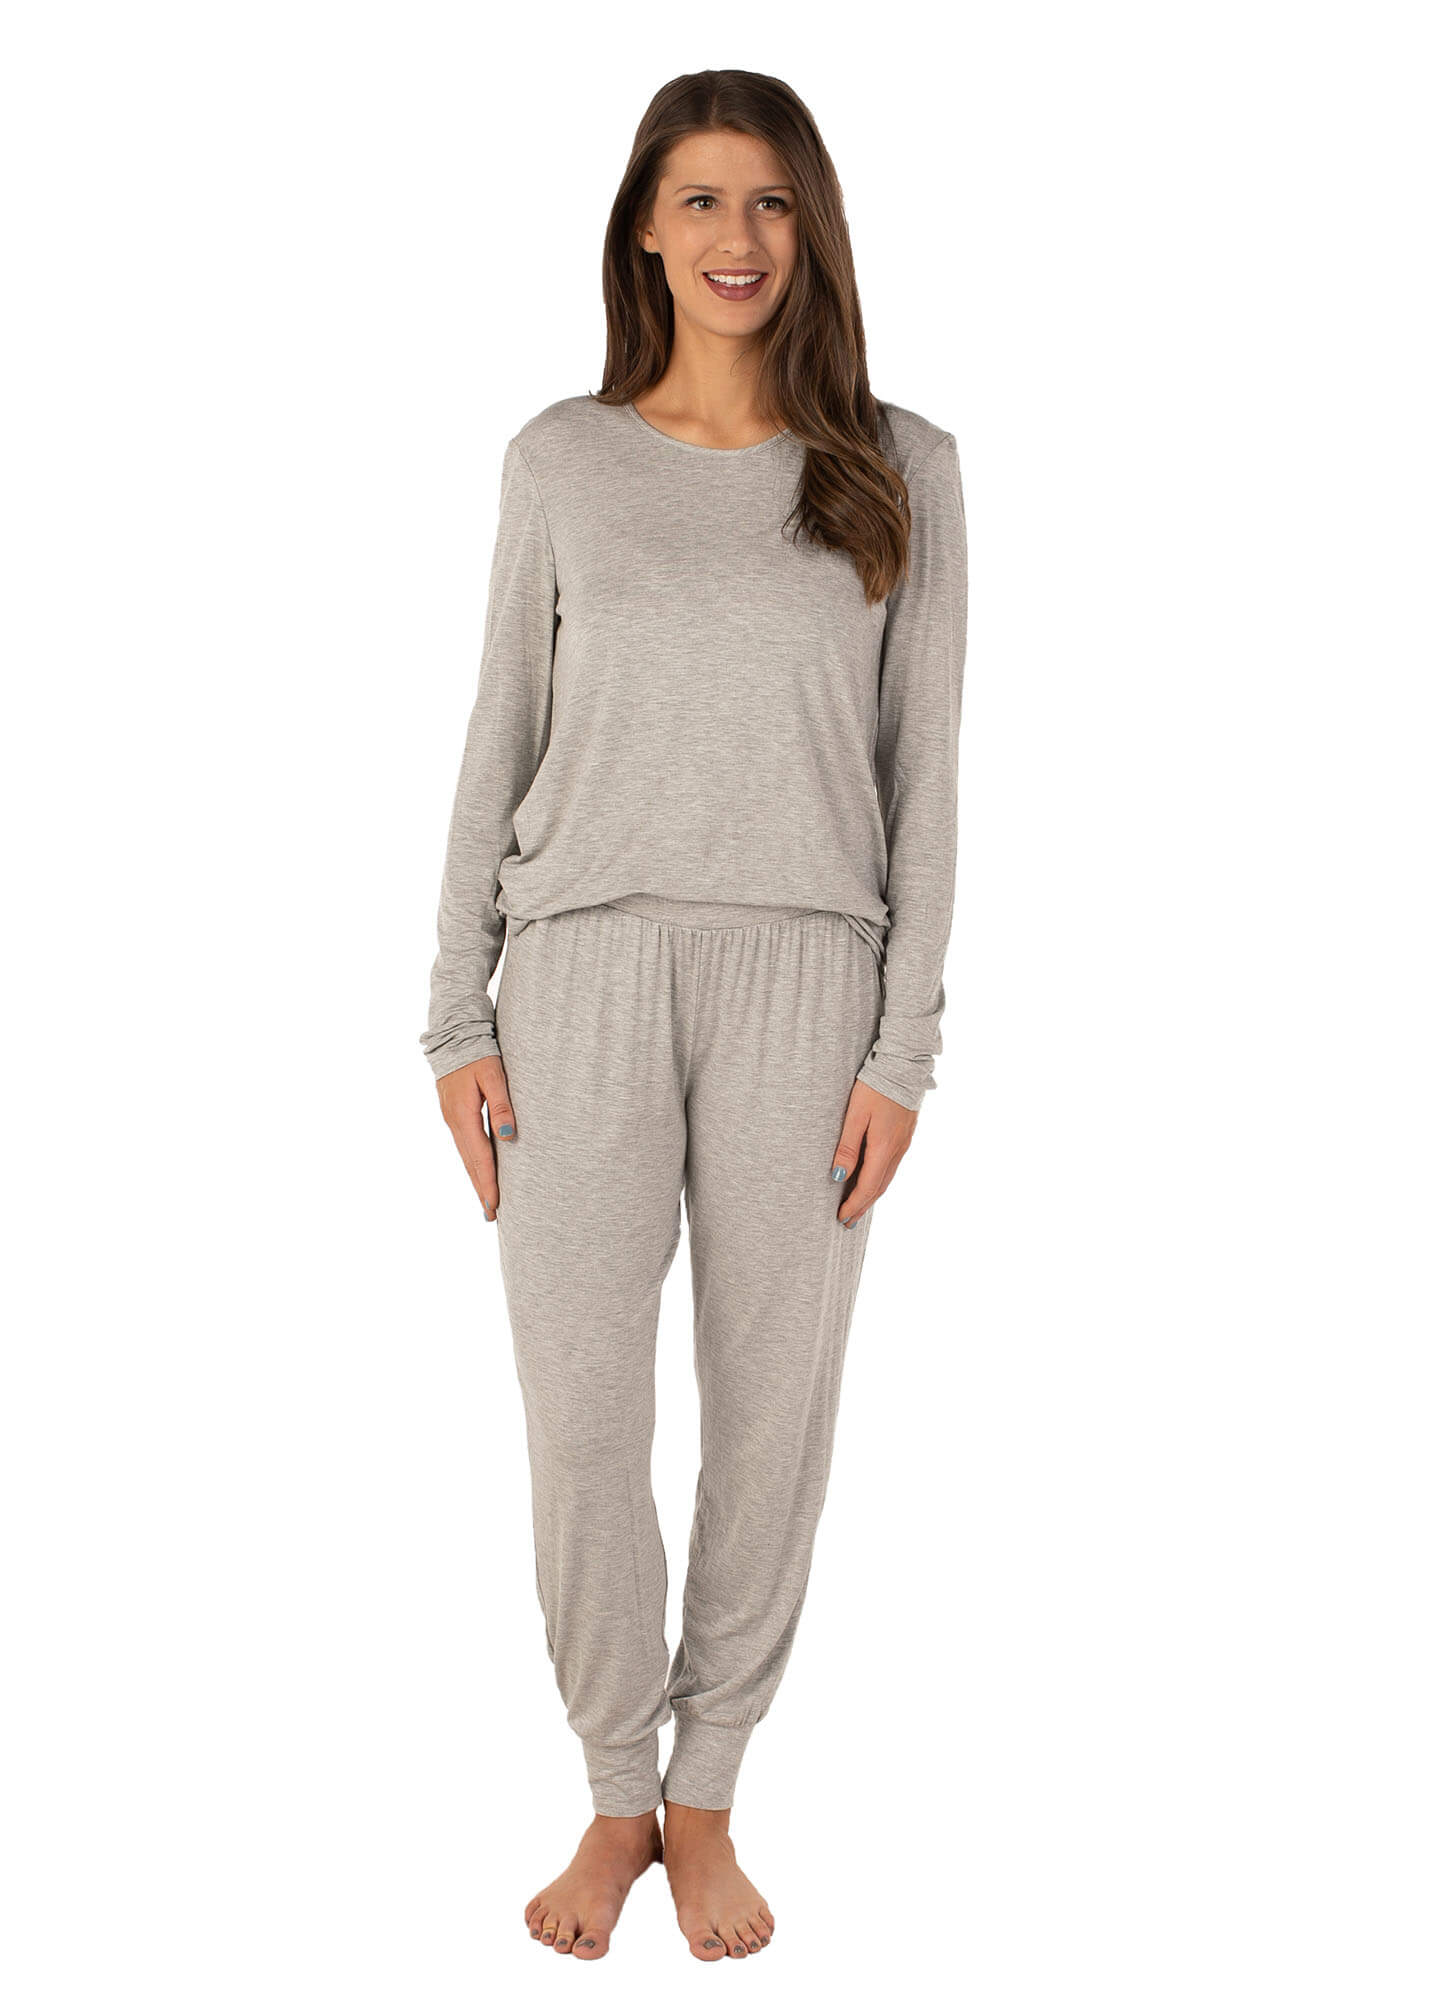 heather gray pajama pants for ladies